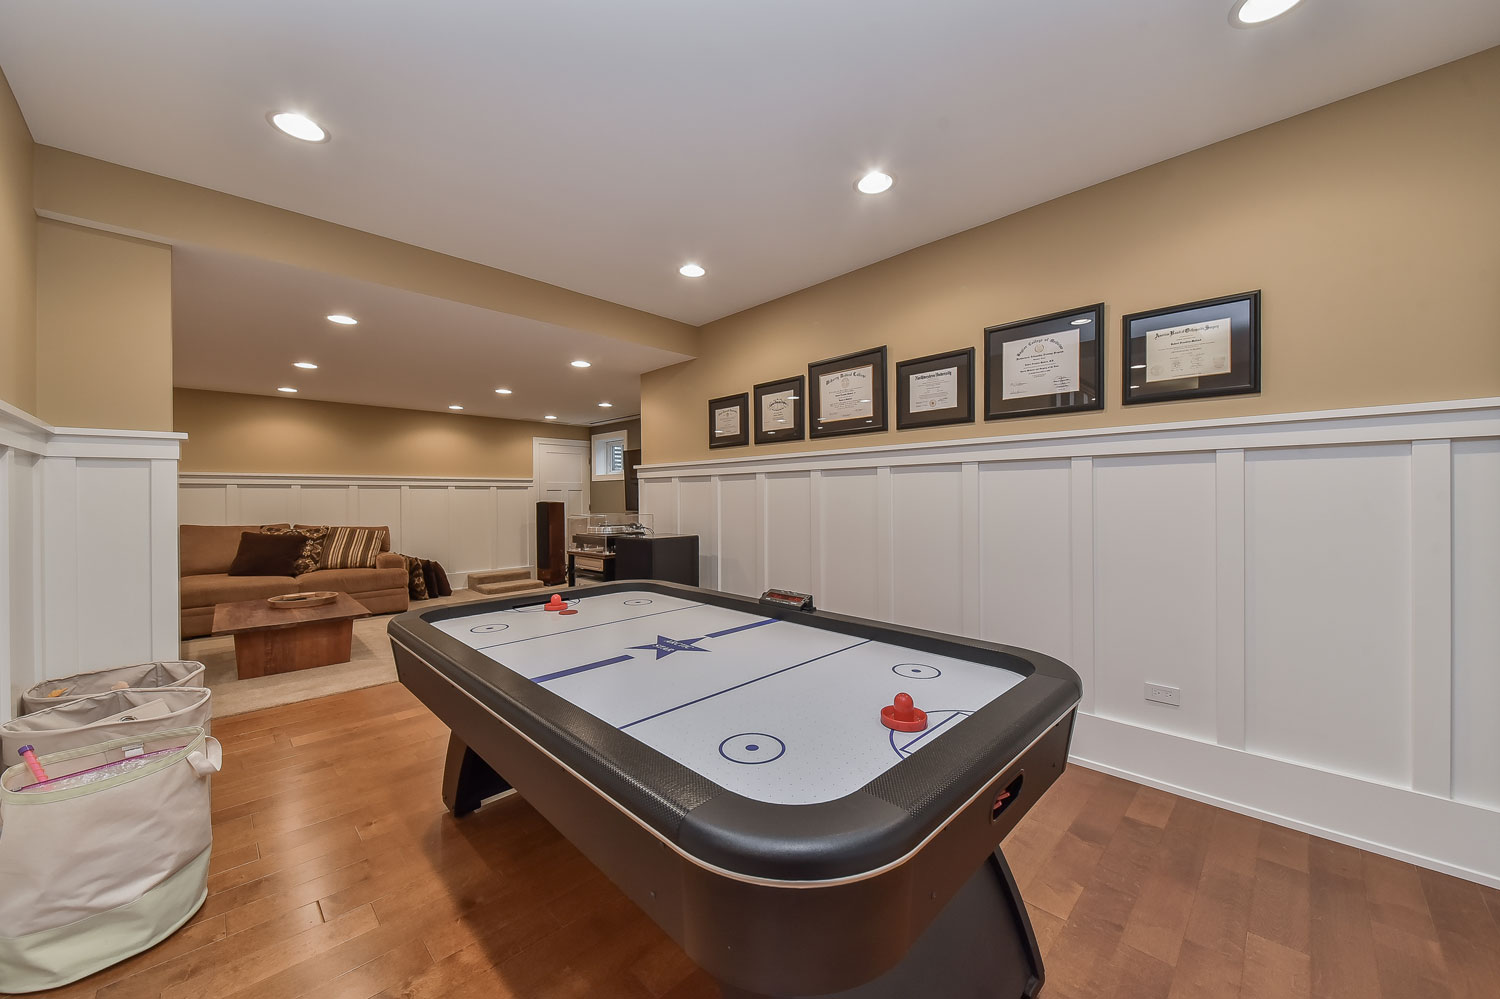 A naperville illinois basement remodel pictures home remodeling contractors sebring design build - Basement design services ...